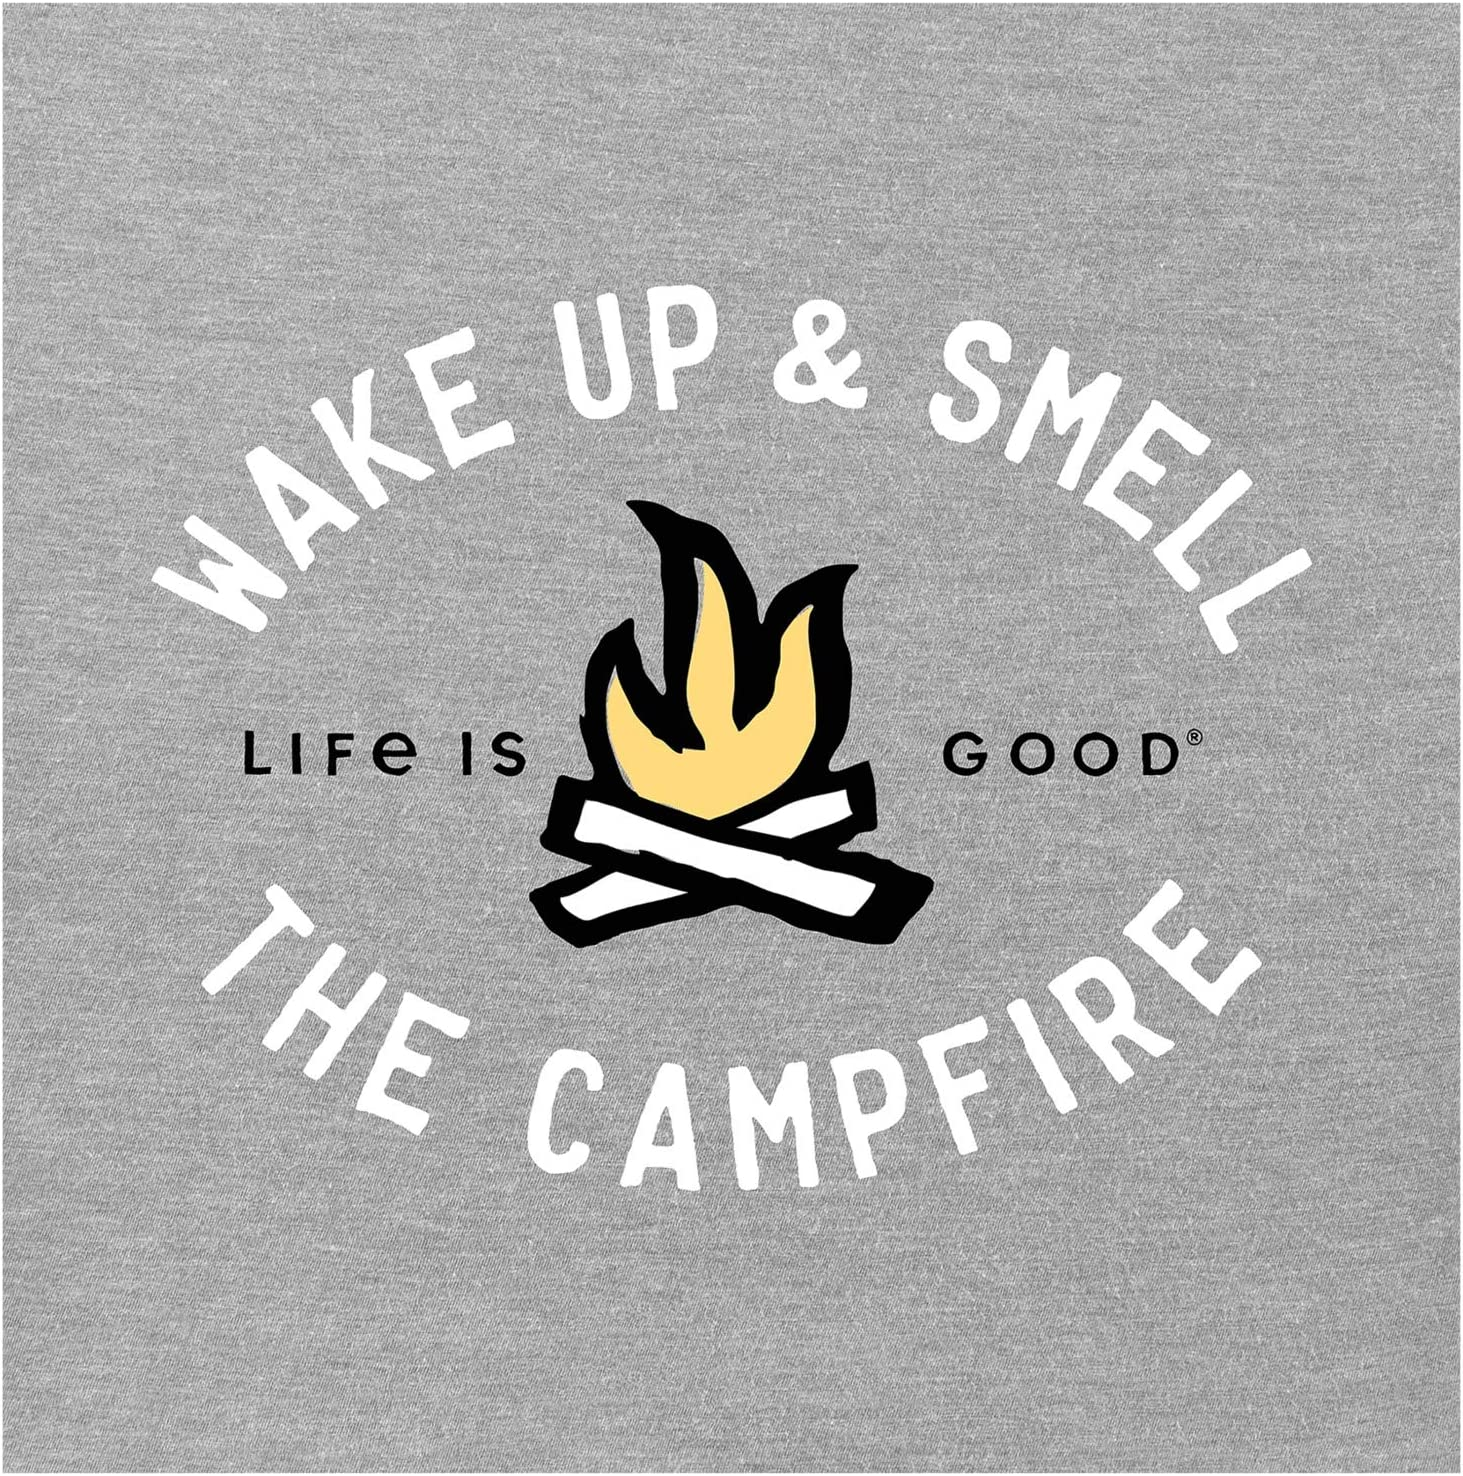 Life is Good Smell the Campfire Crusher Tee y8DQp